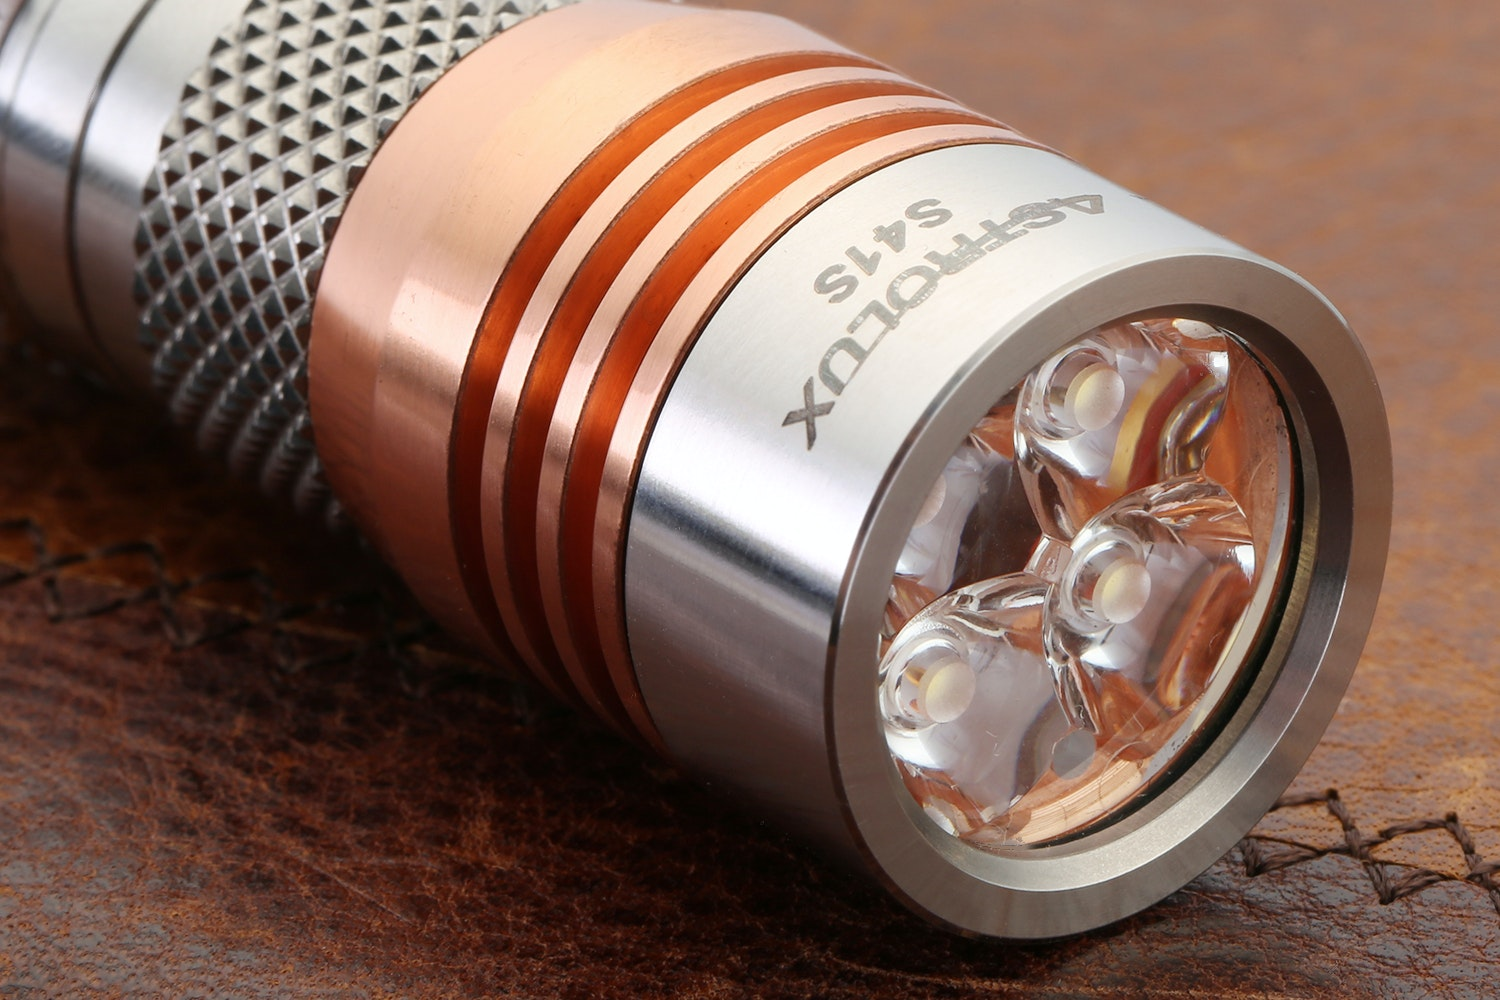 Astrolux S41S Copper & Stainless Steel Flashlight